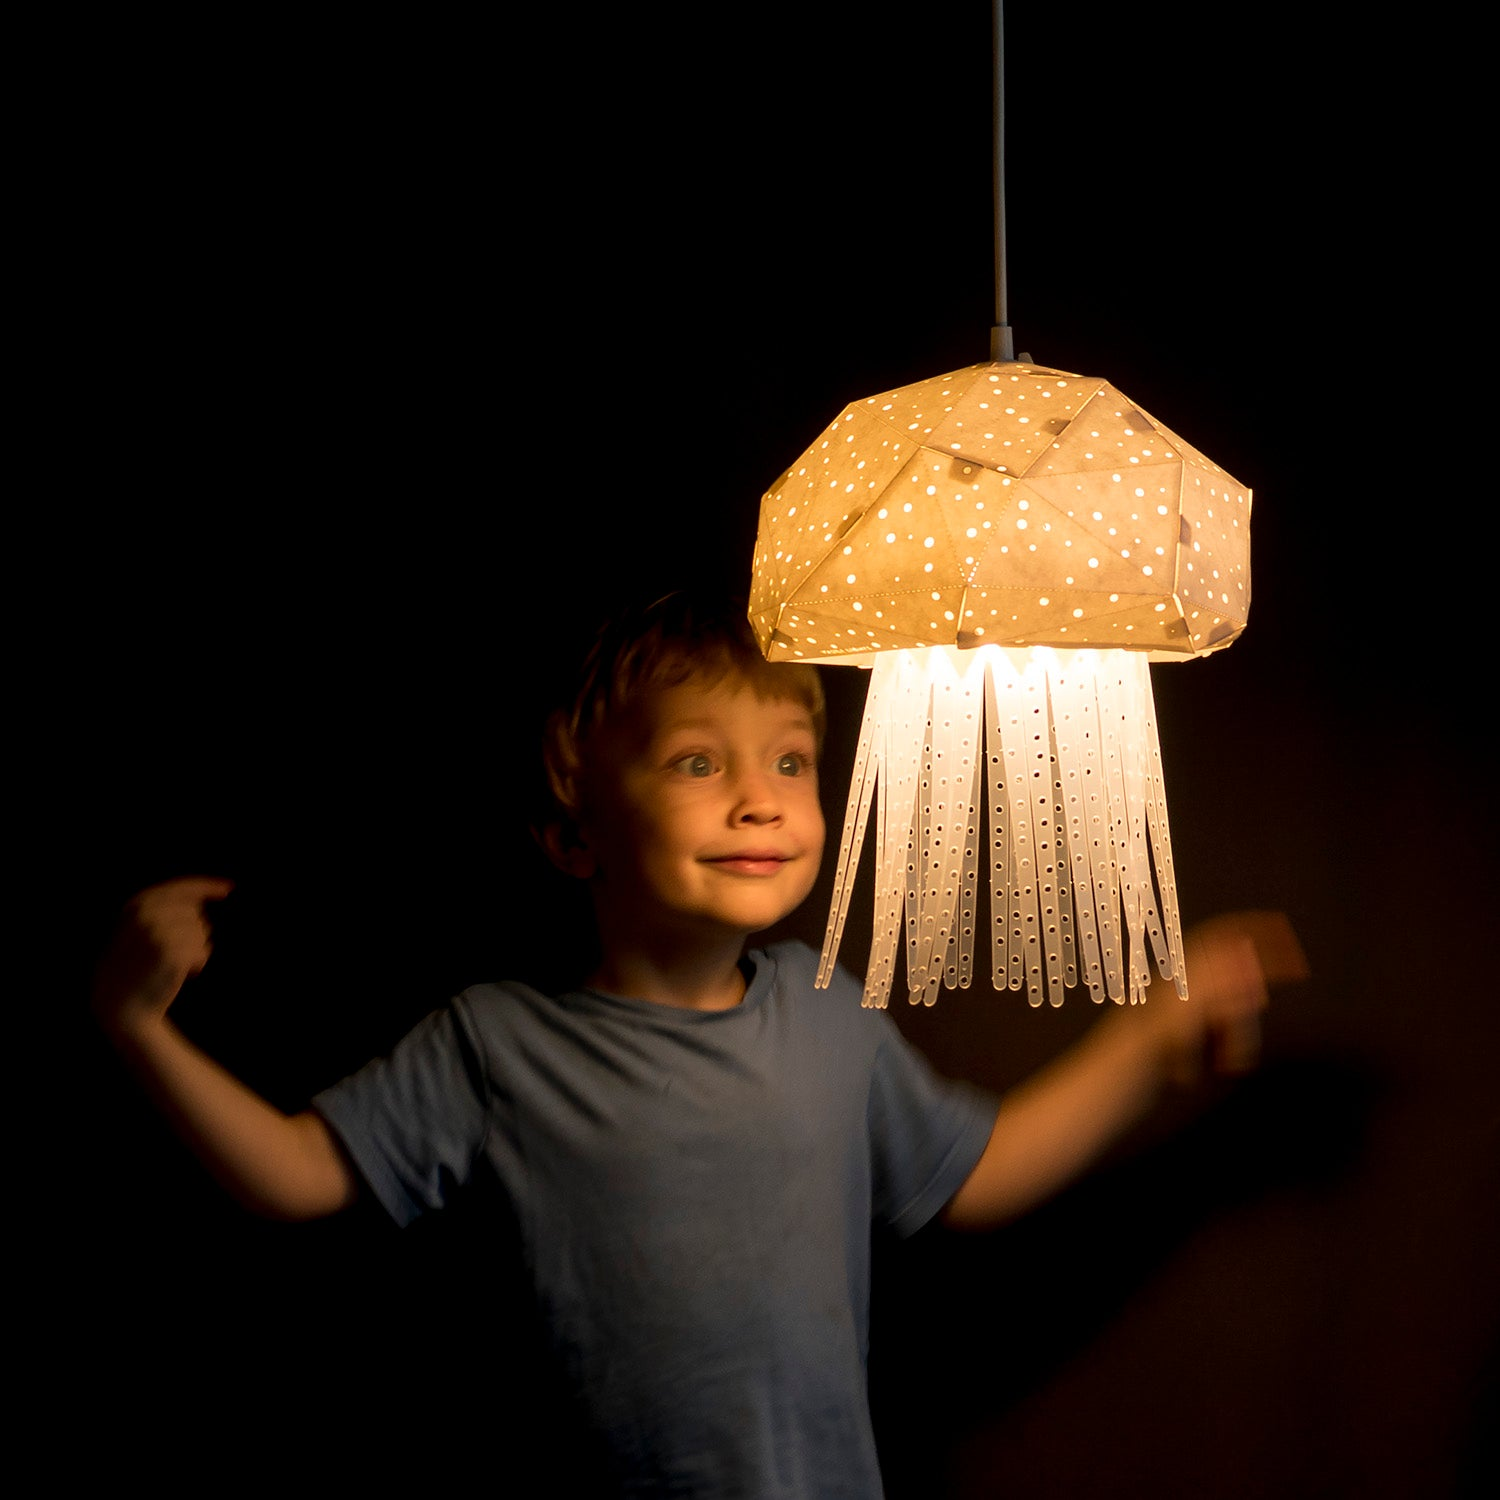 Little boy playing with the pendant sea-inspired lamp, which has a shape of little Jellyfish.